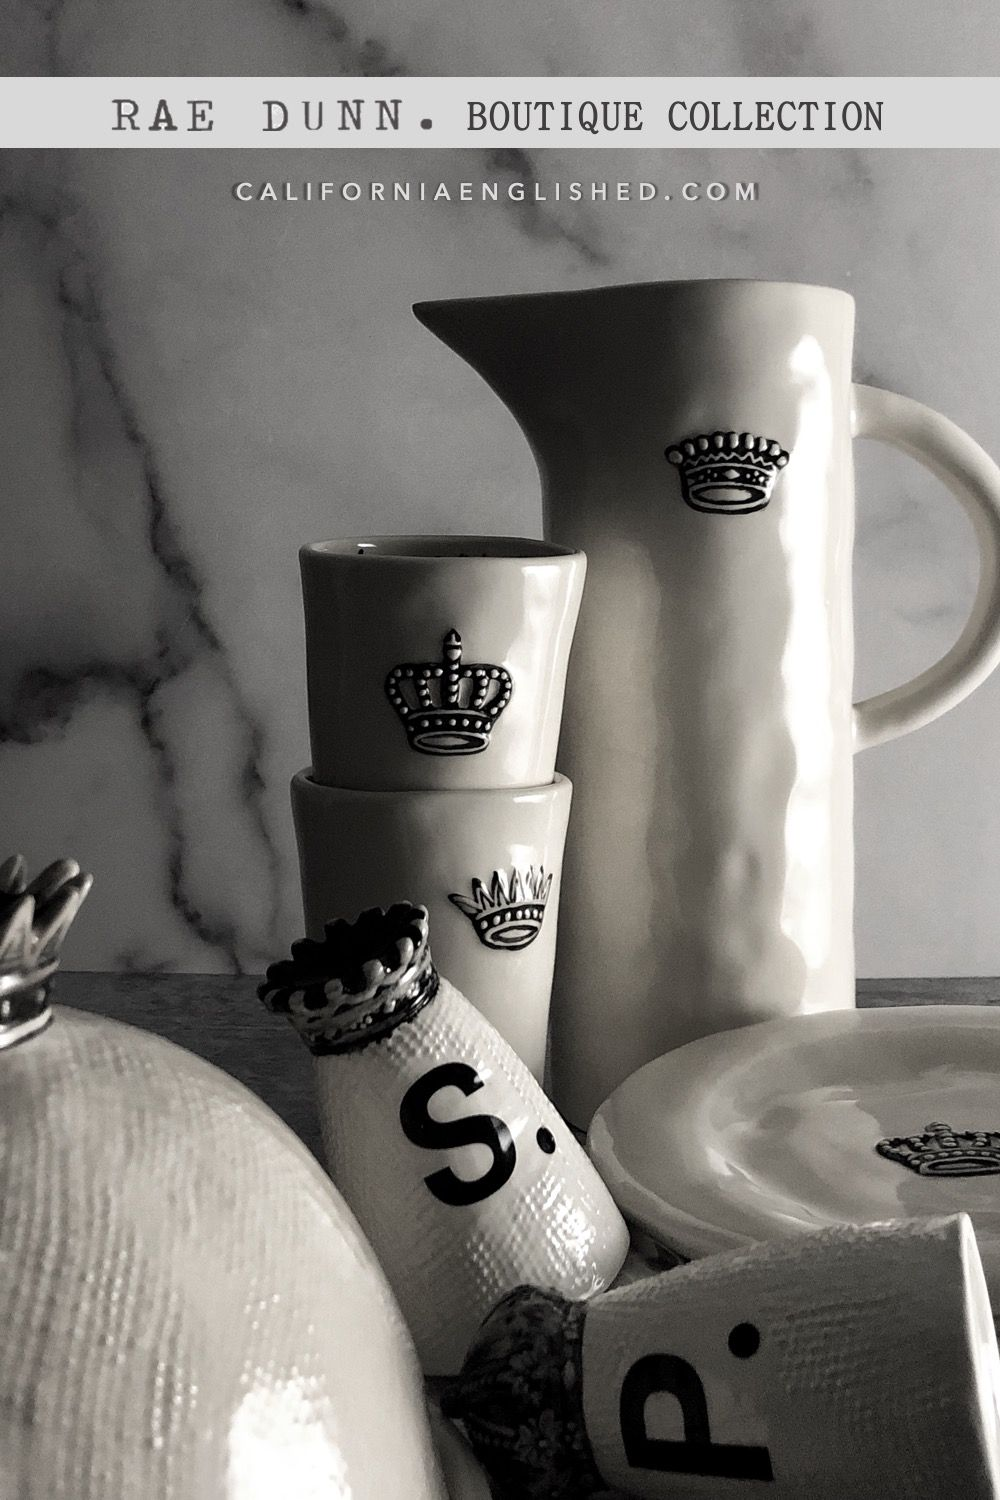 Rae Dunn Boutique Have A Royal Day Crown Breakfast Set At